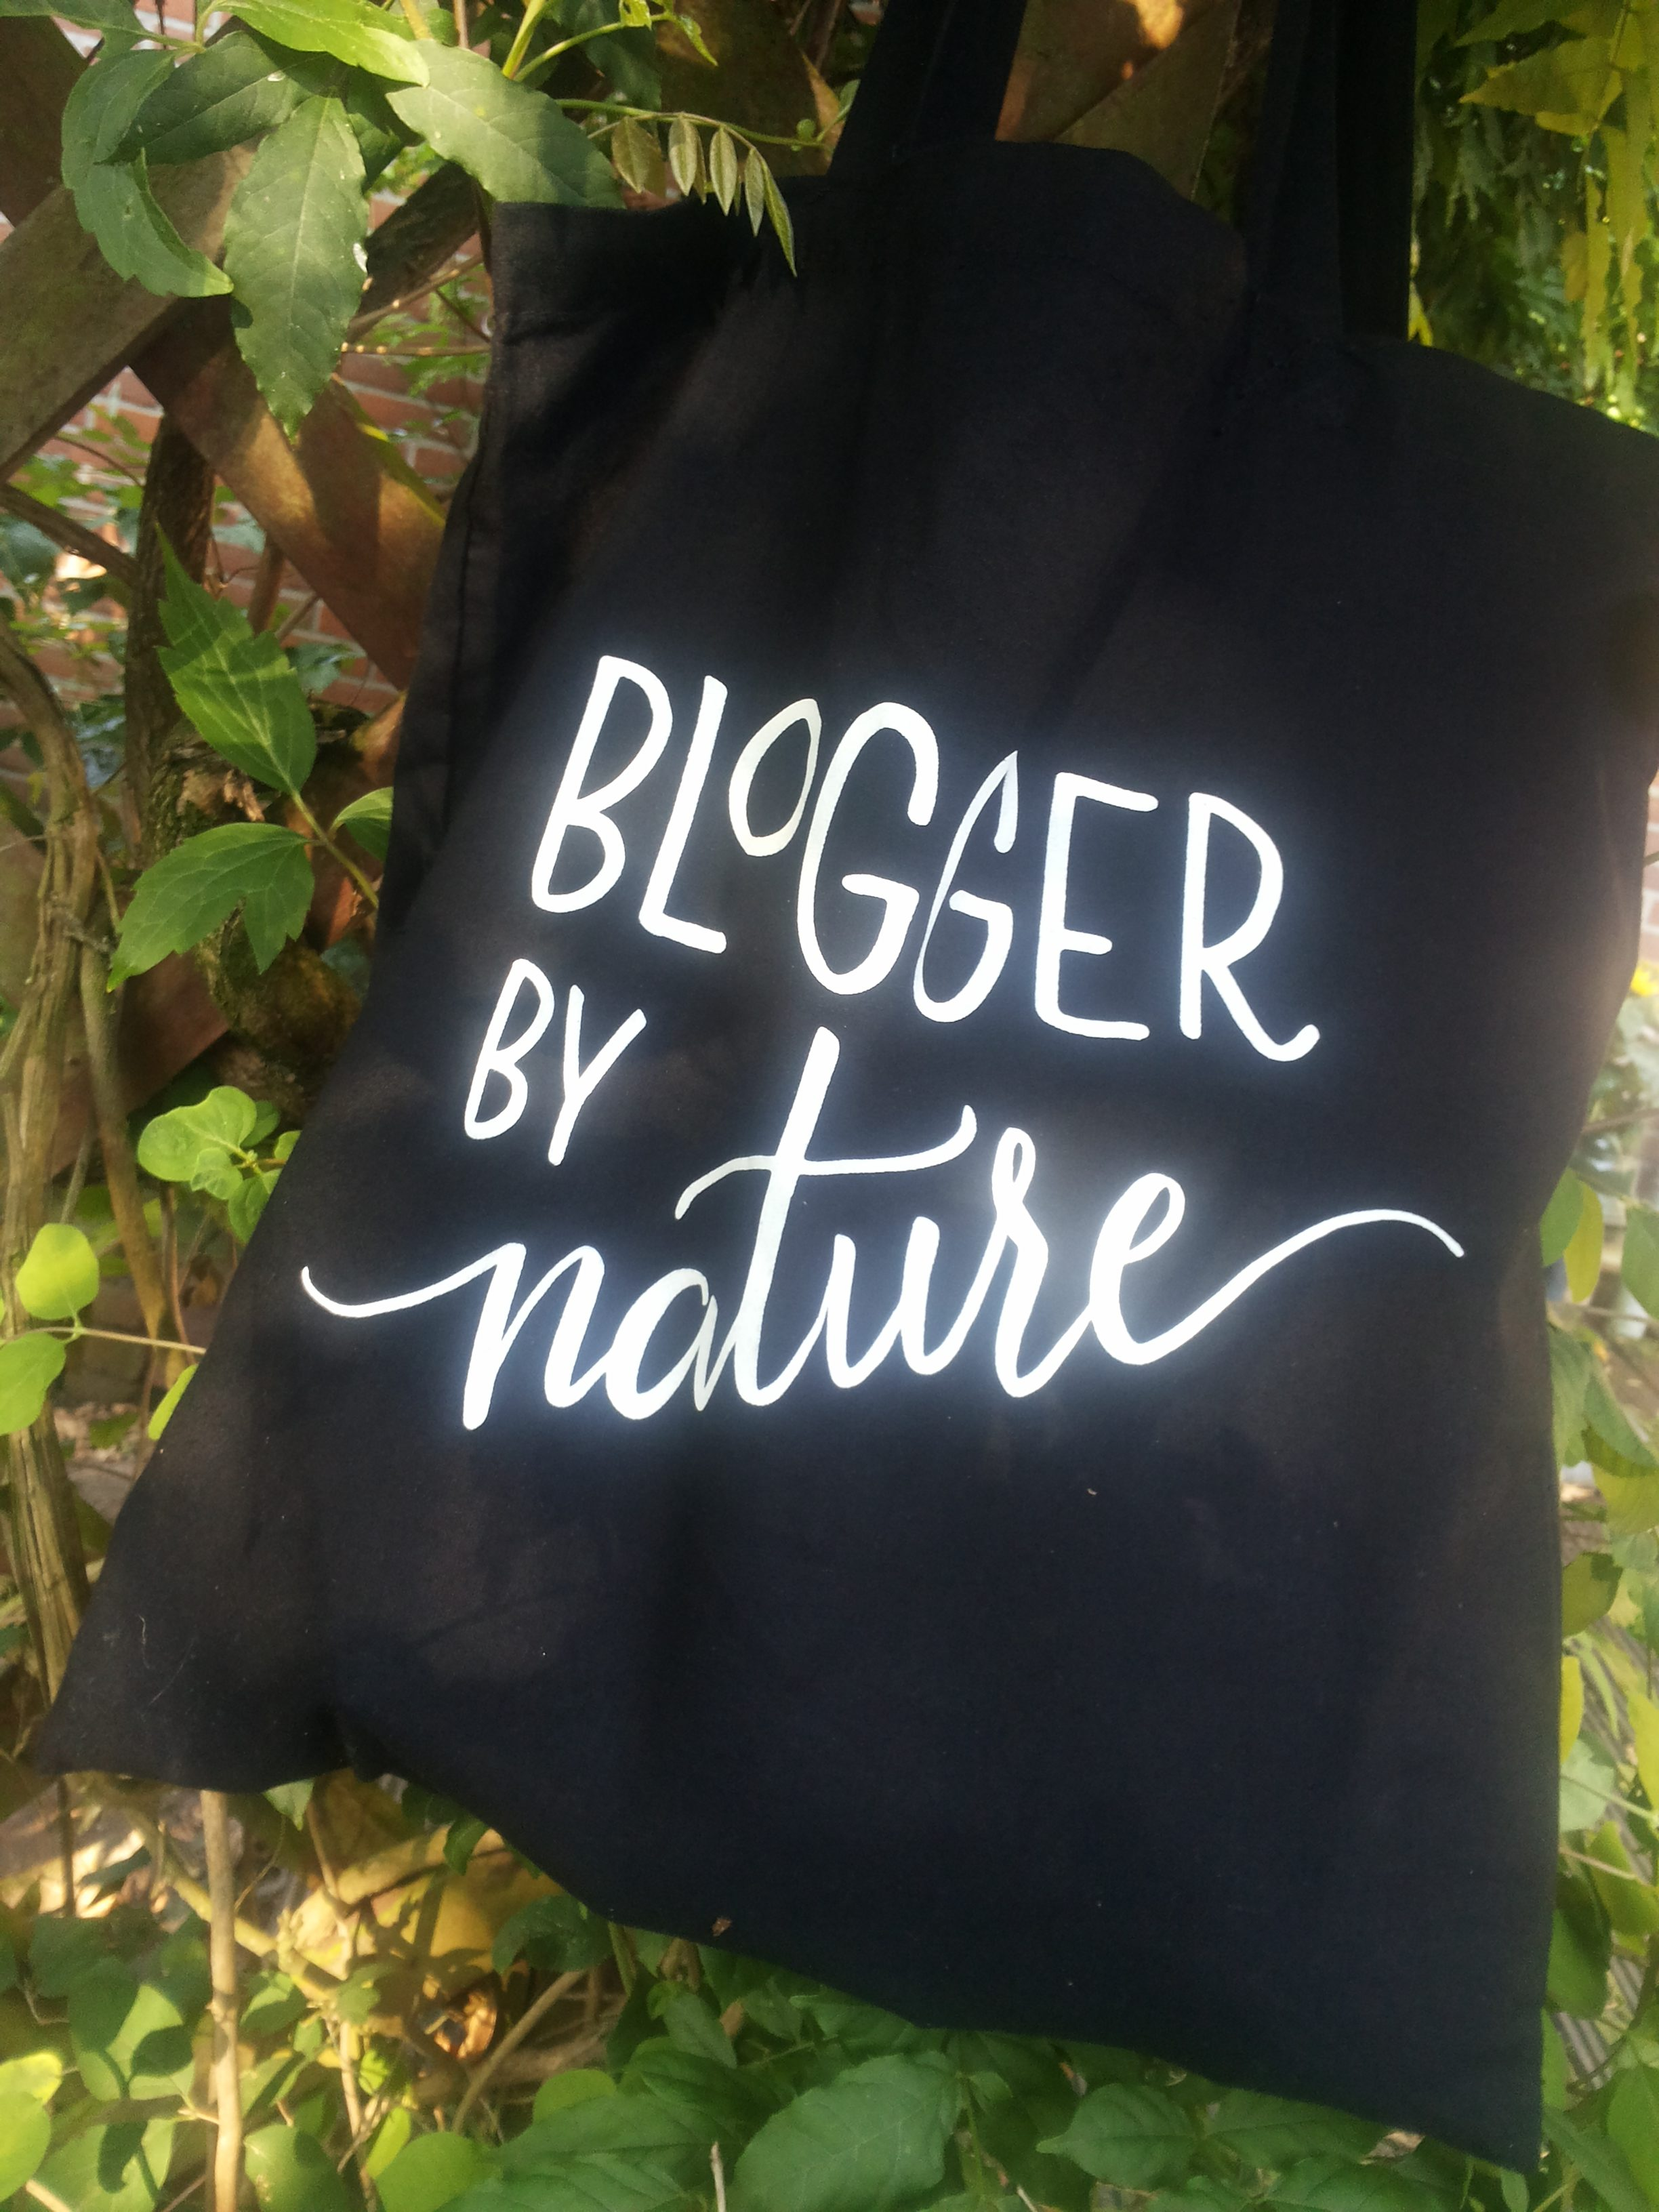 Goodiebag Blogger by Nature